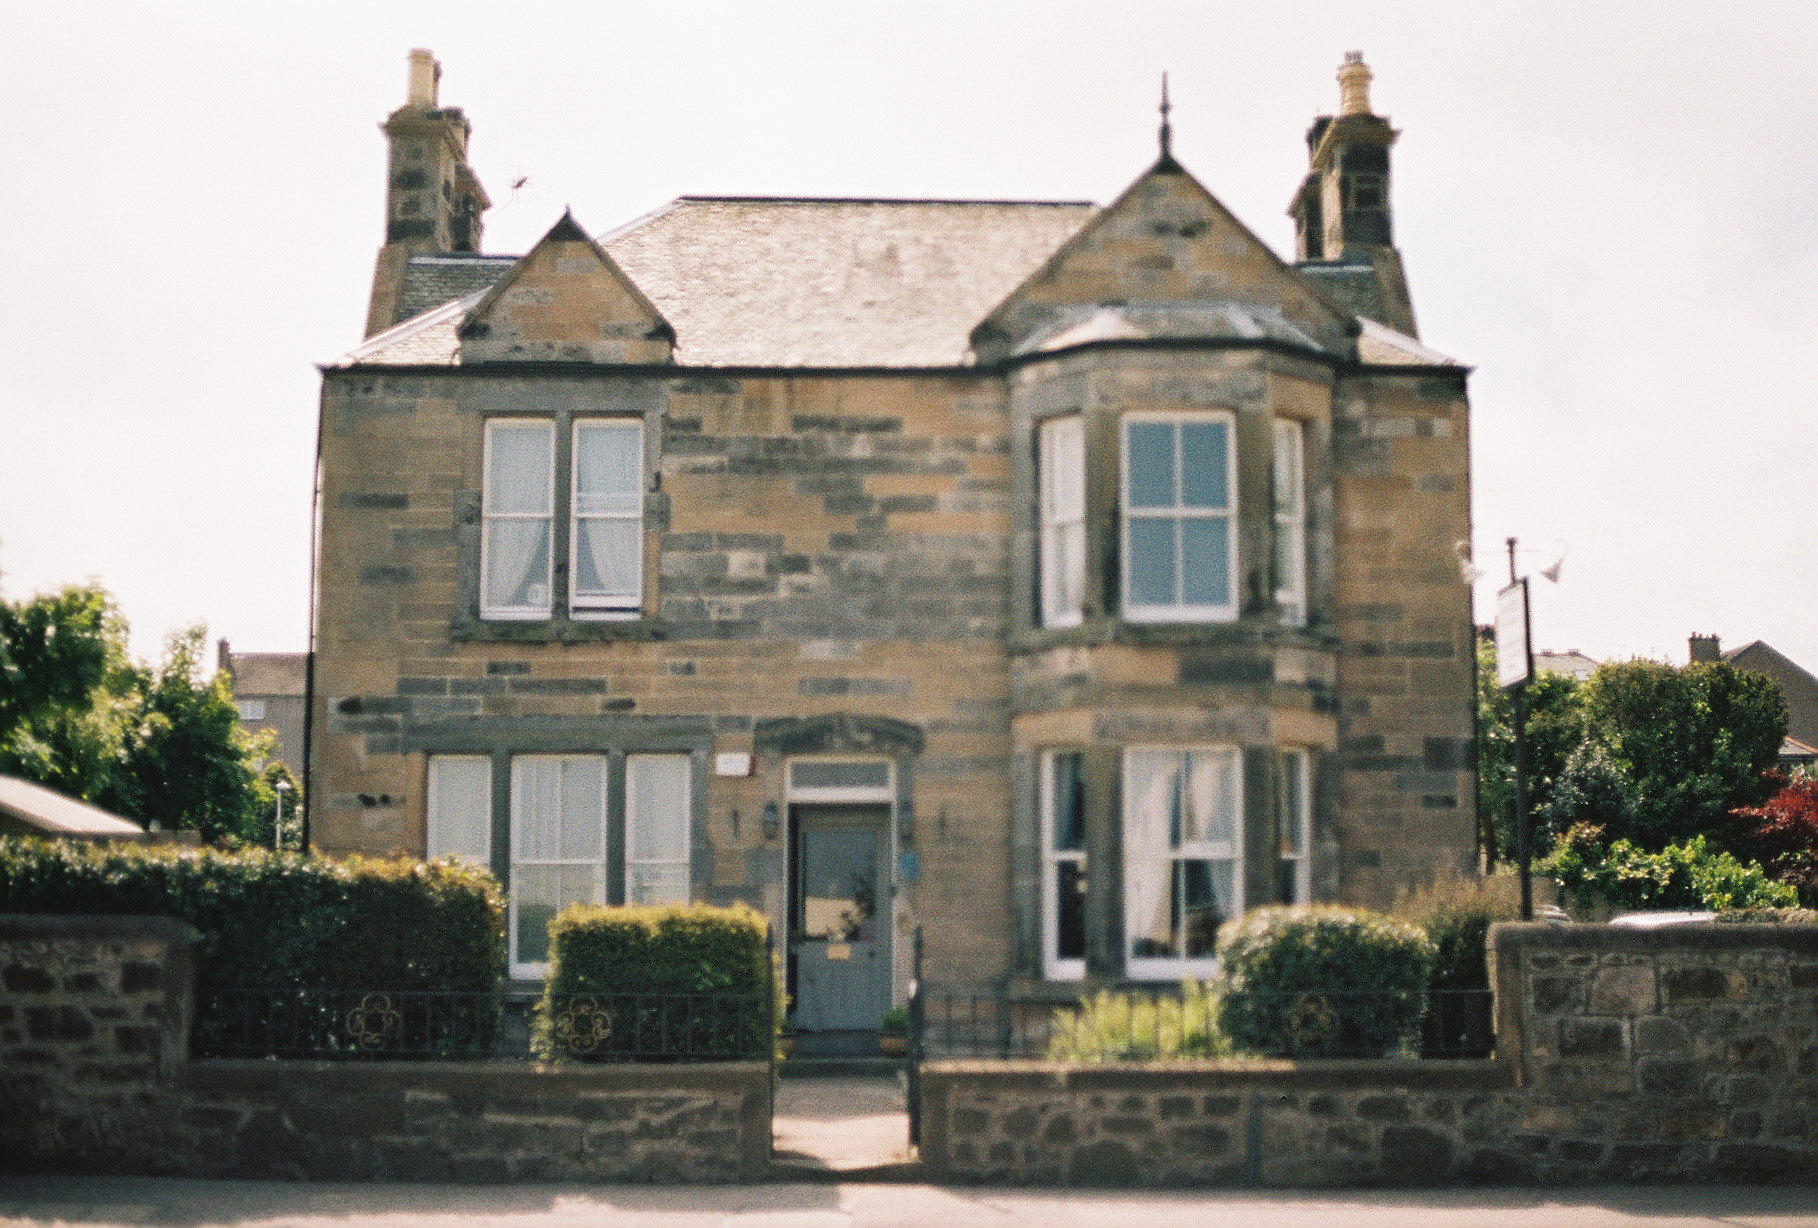 aynetree-guest-house-edinburgh-scotland-european-honeymoon